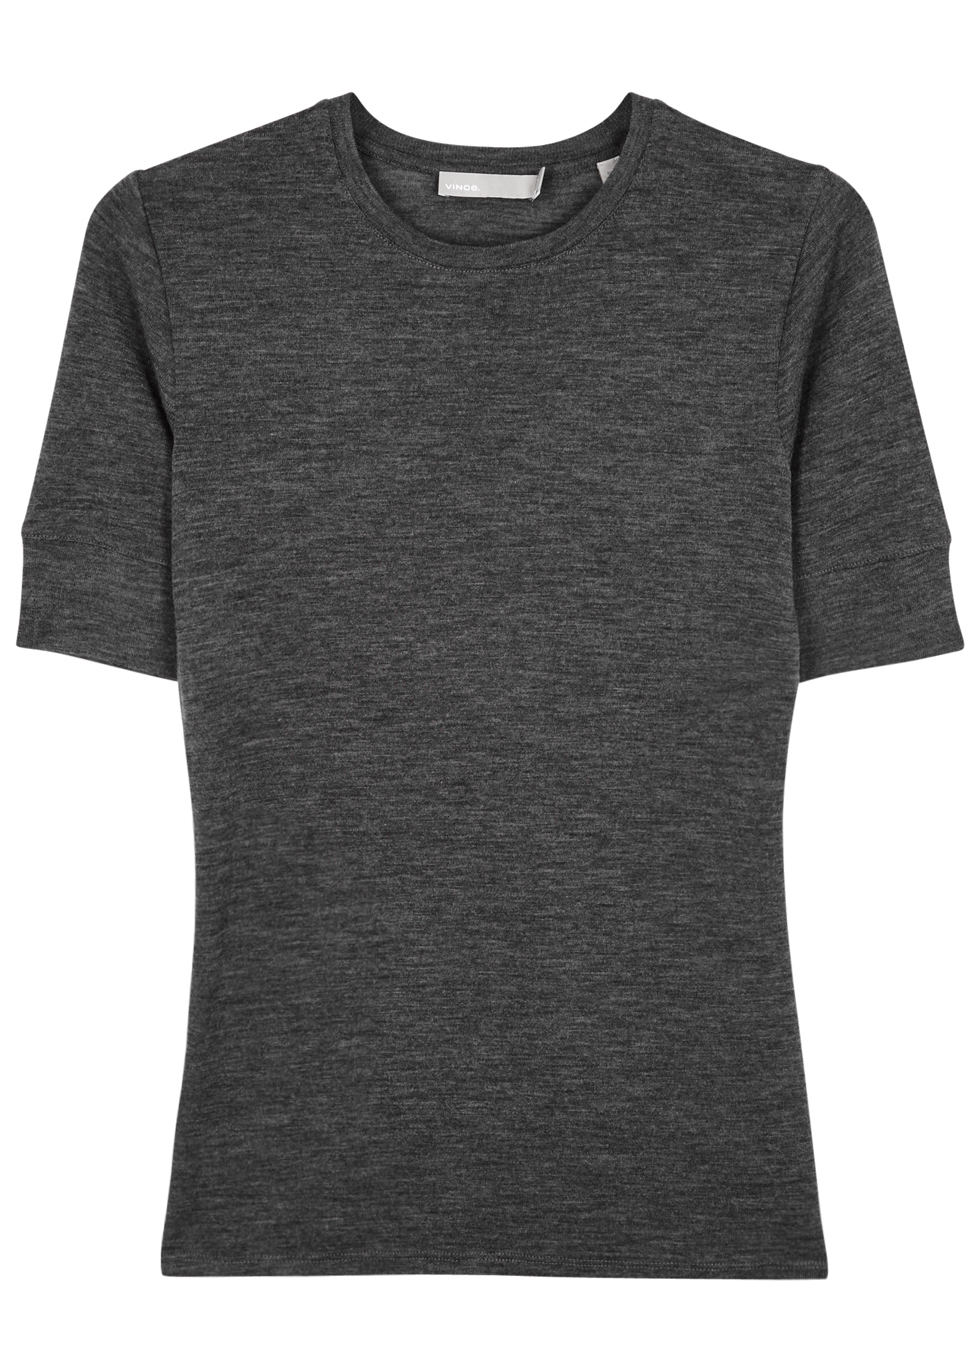 Grey Wool T Shirt - pattern: plain; style: t-shirt; predominant colour: charcoal; occasions: casual; length: standard; fibres: wool - 100%; fit: body skimming; neckline: crew; sleeve length: short sleeve; sleeve style: standard; texture group: knits/crochet; pattern type: fabric; wardrobe: basic; season: a/w 2016